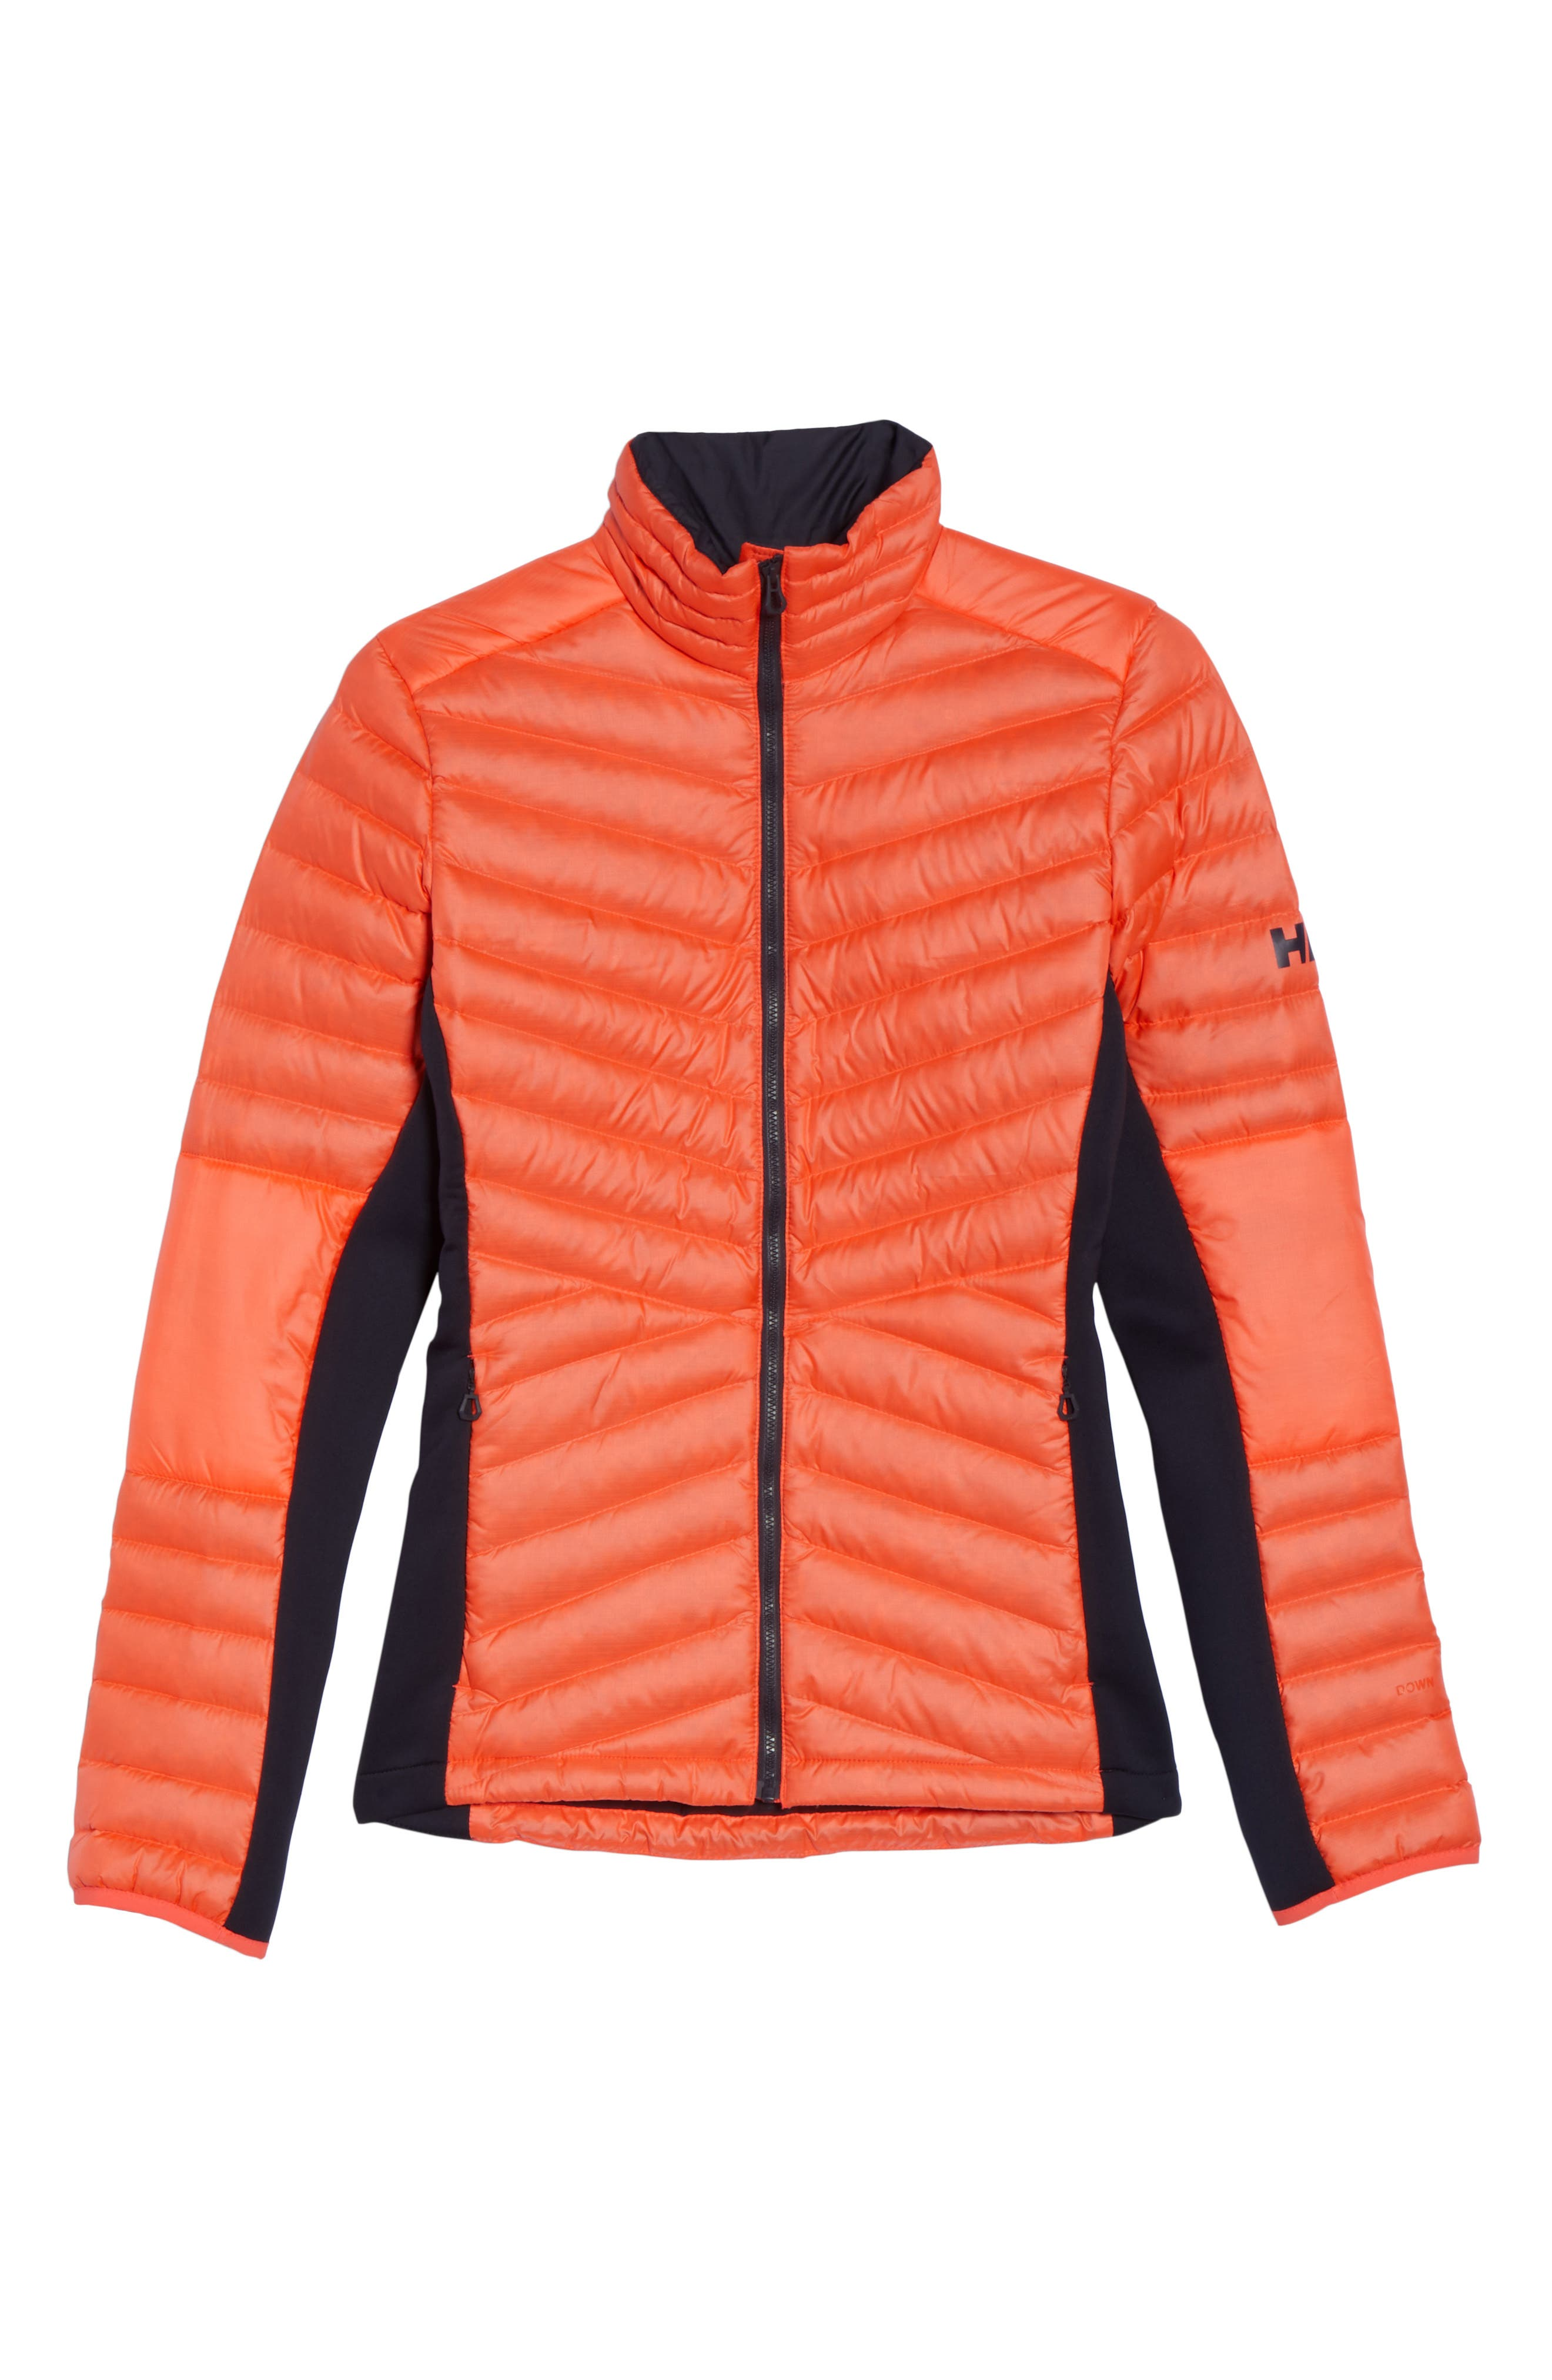 Verglas Hybrid Down Insulator Jacket,                             Alternate thumbnail 7, color,                             Neon Coral